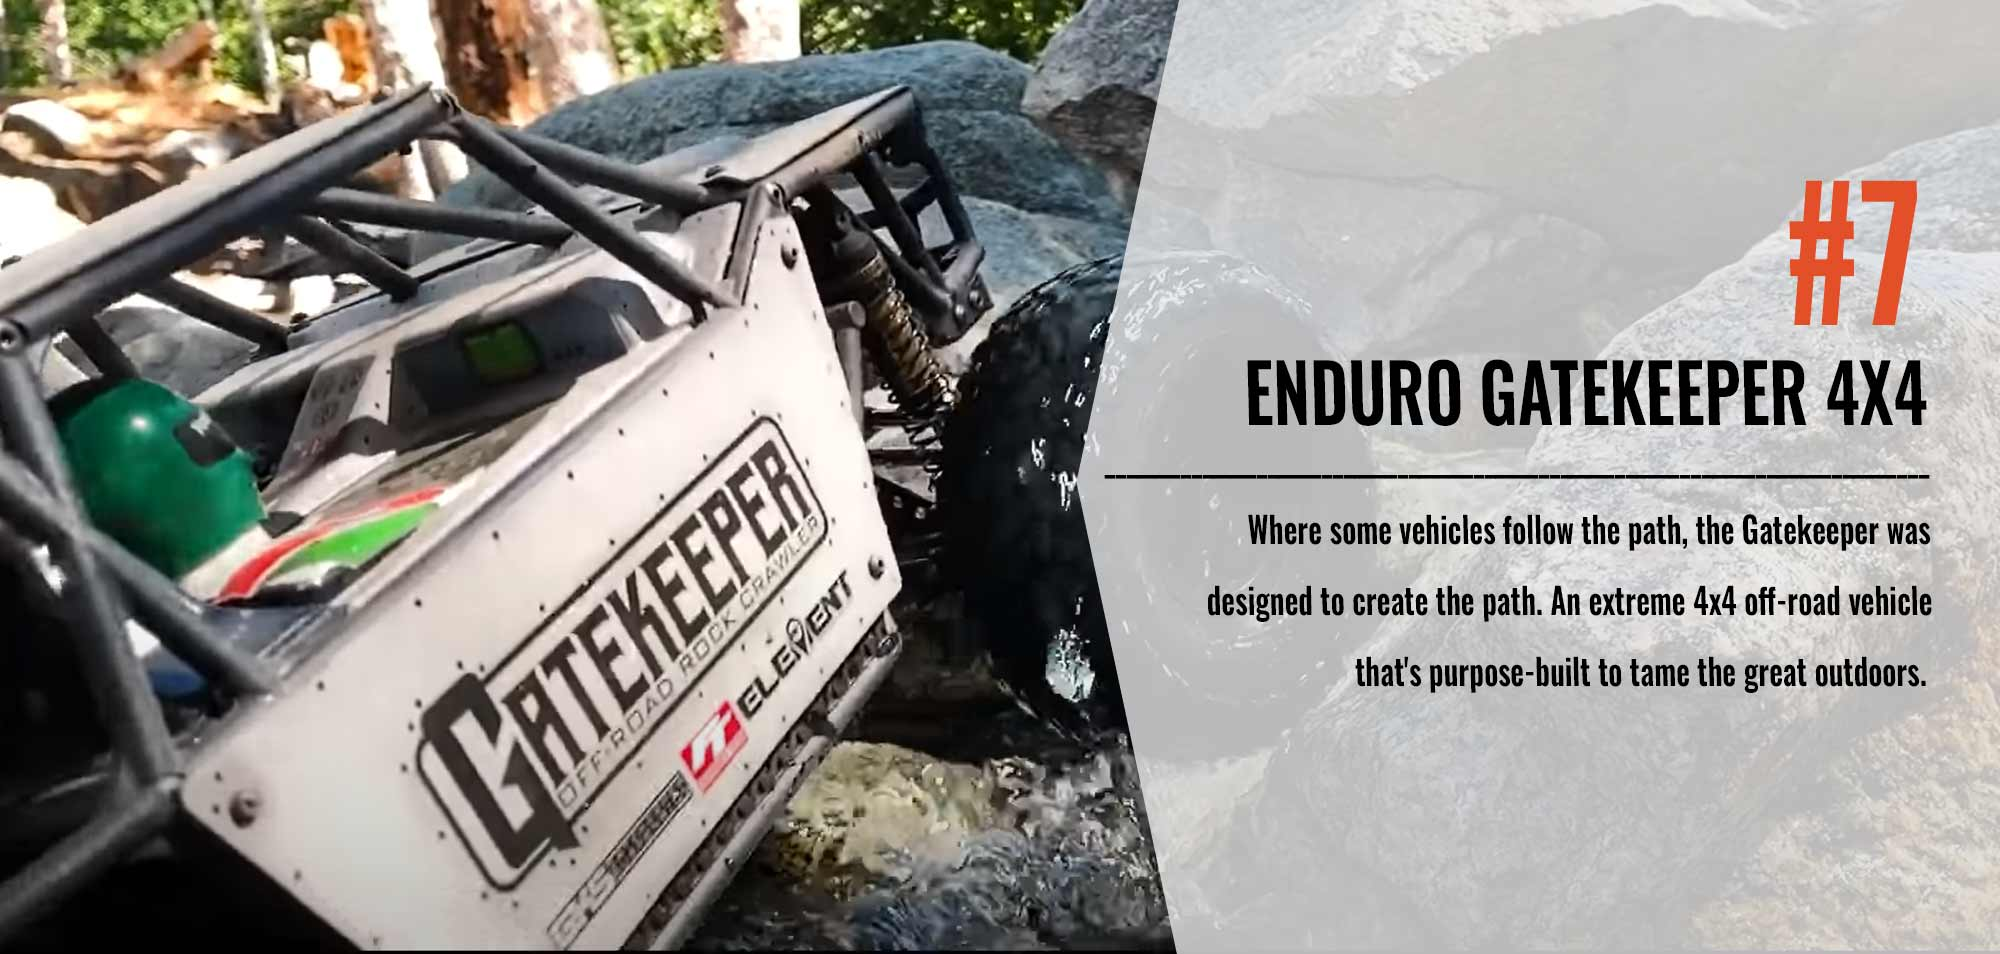 Number Seven in our Top 10 List - Enduro Gatekeeper